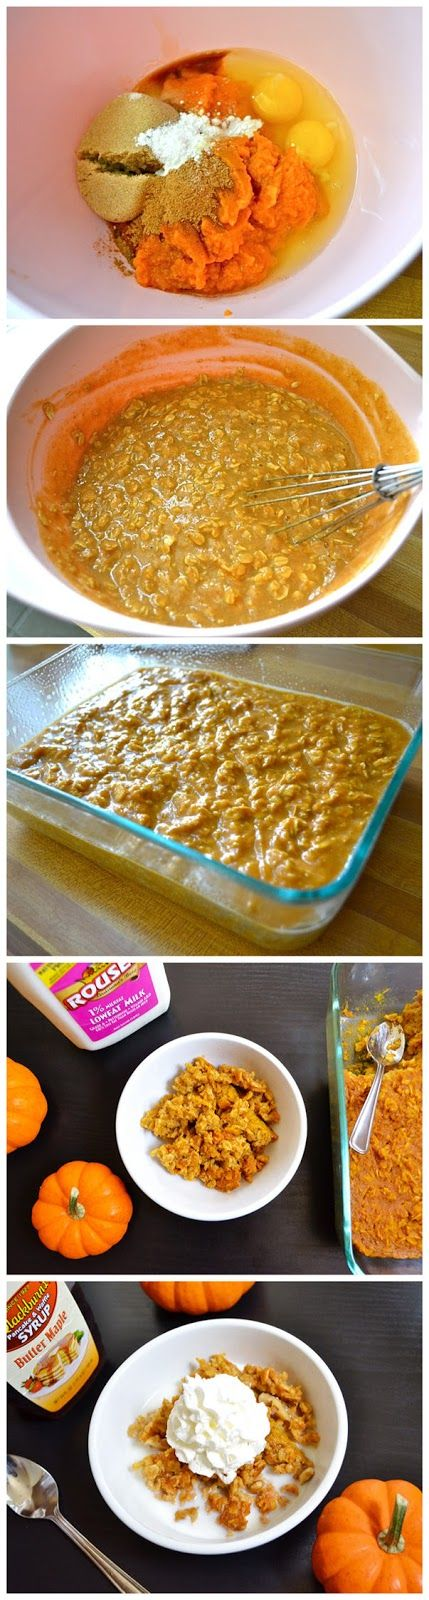 Baked pumpkin pie oatmeal. This was delicious and easy to make! I had to bake it 20 minutes longer than it said though, because the middle was still mushy.